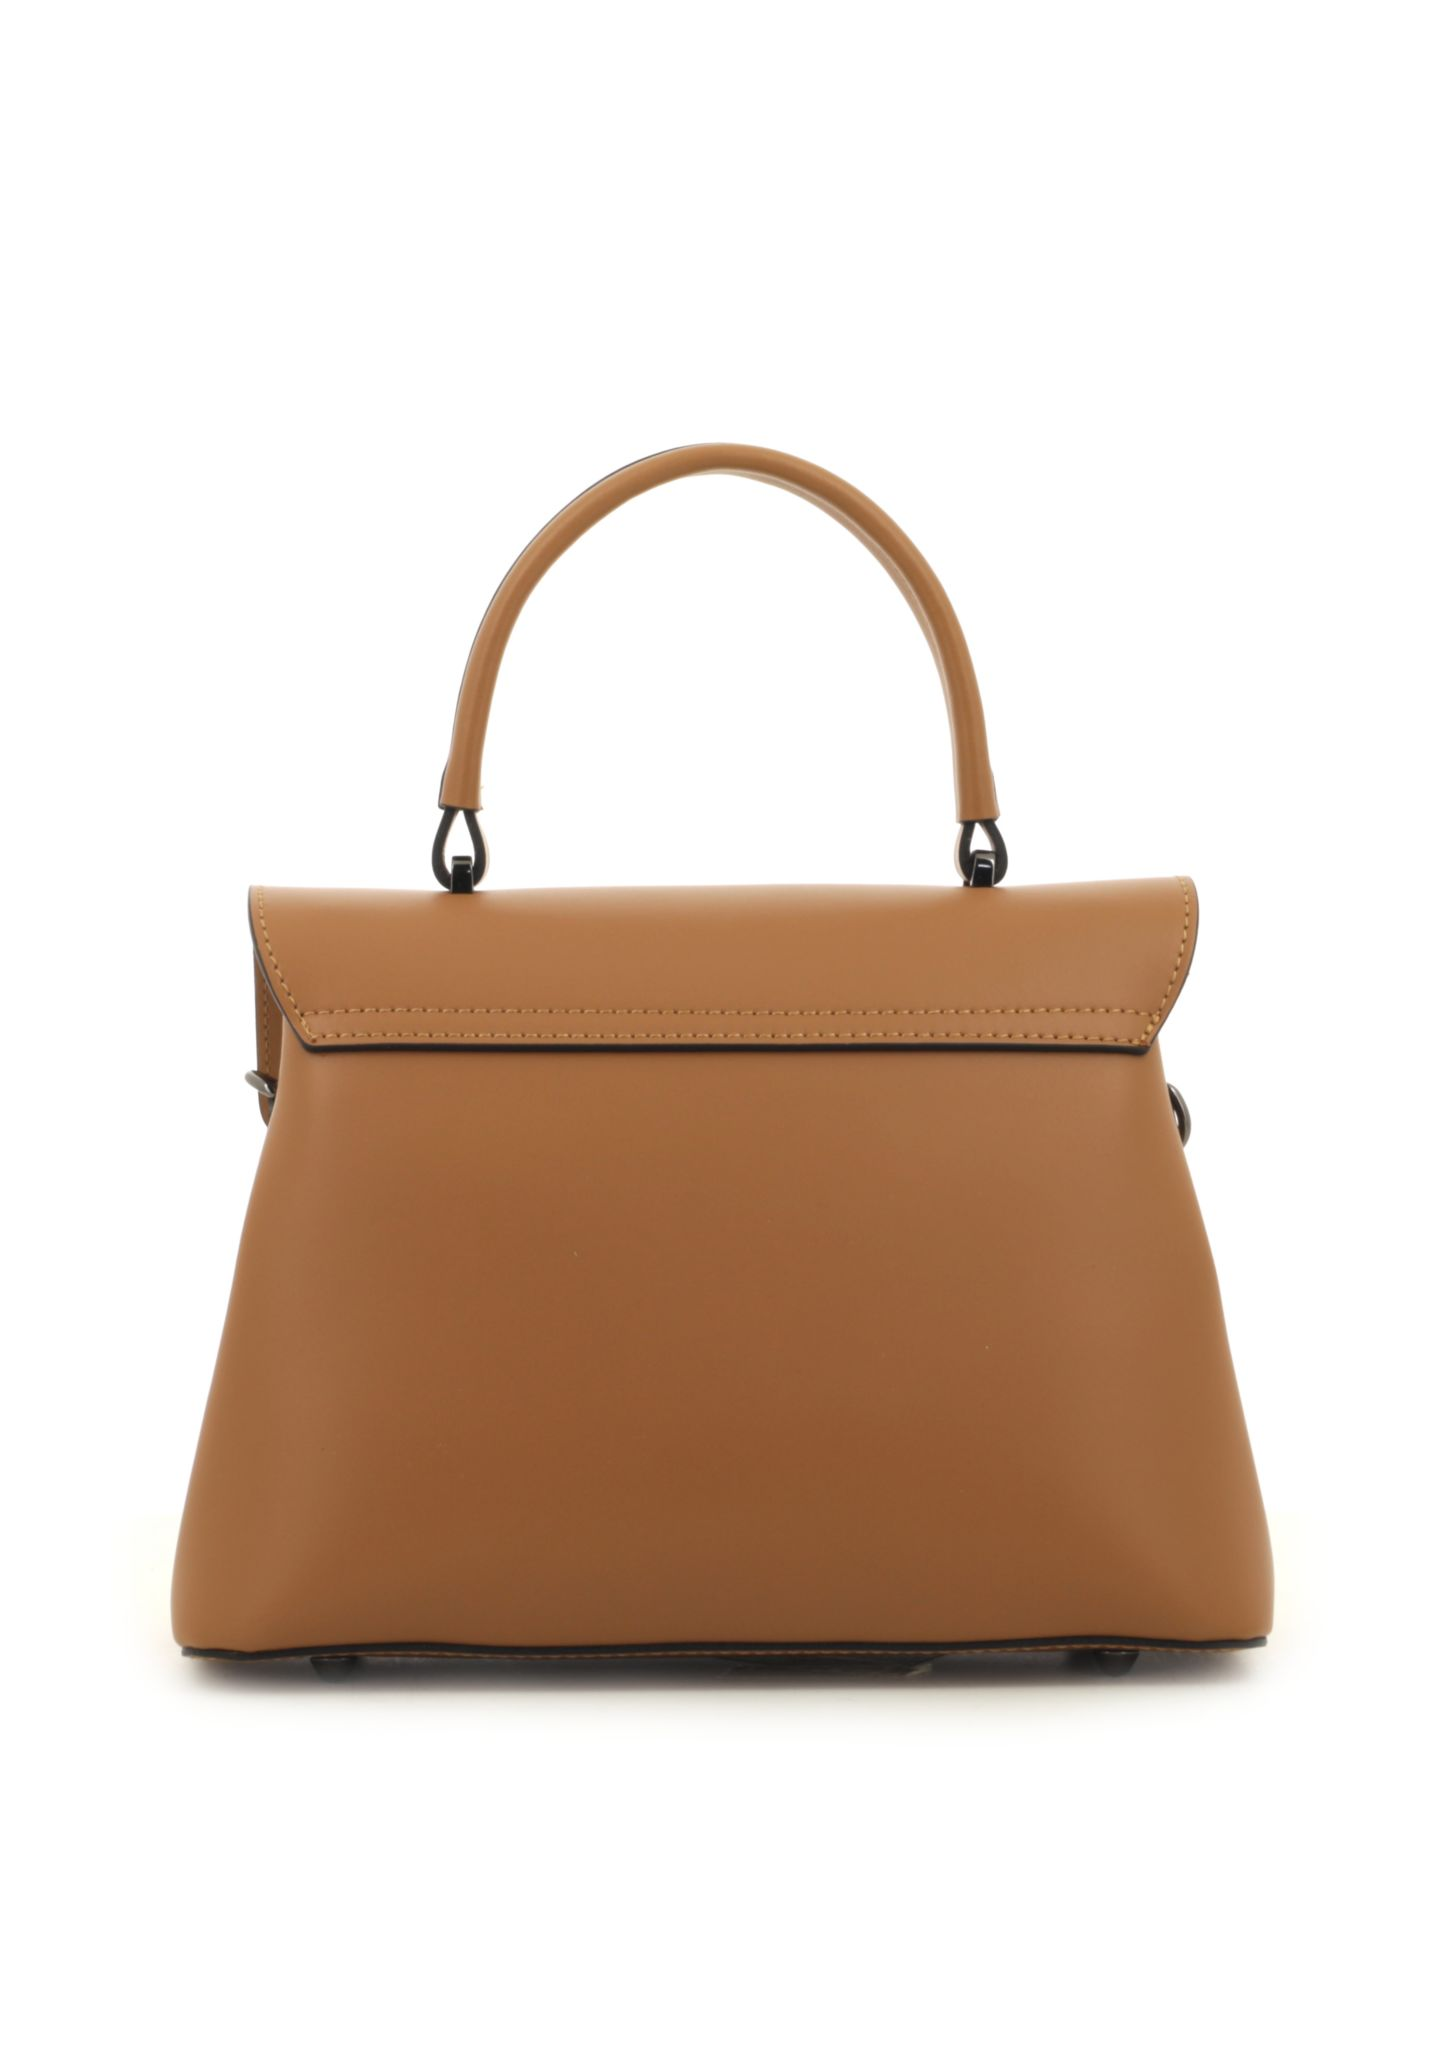 Cognac Ruga Leather Handbag With Detachable Strap 034 detail 3